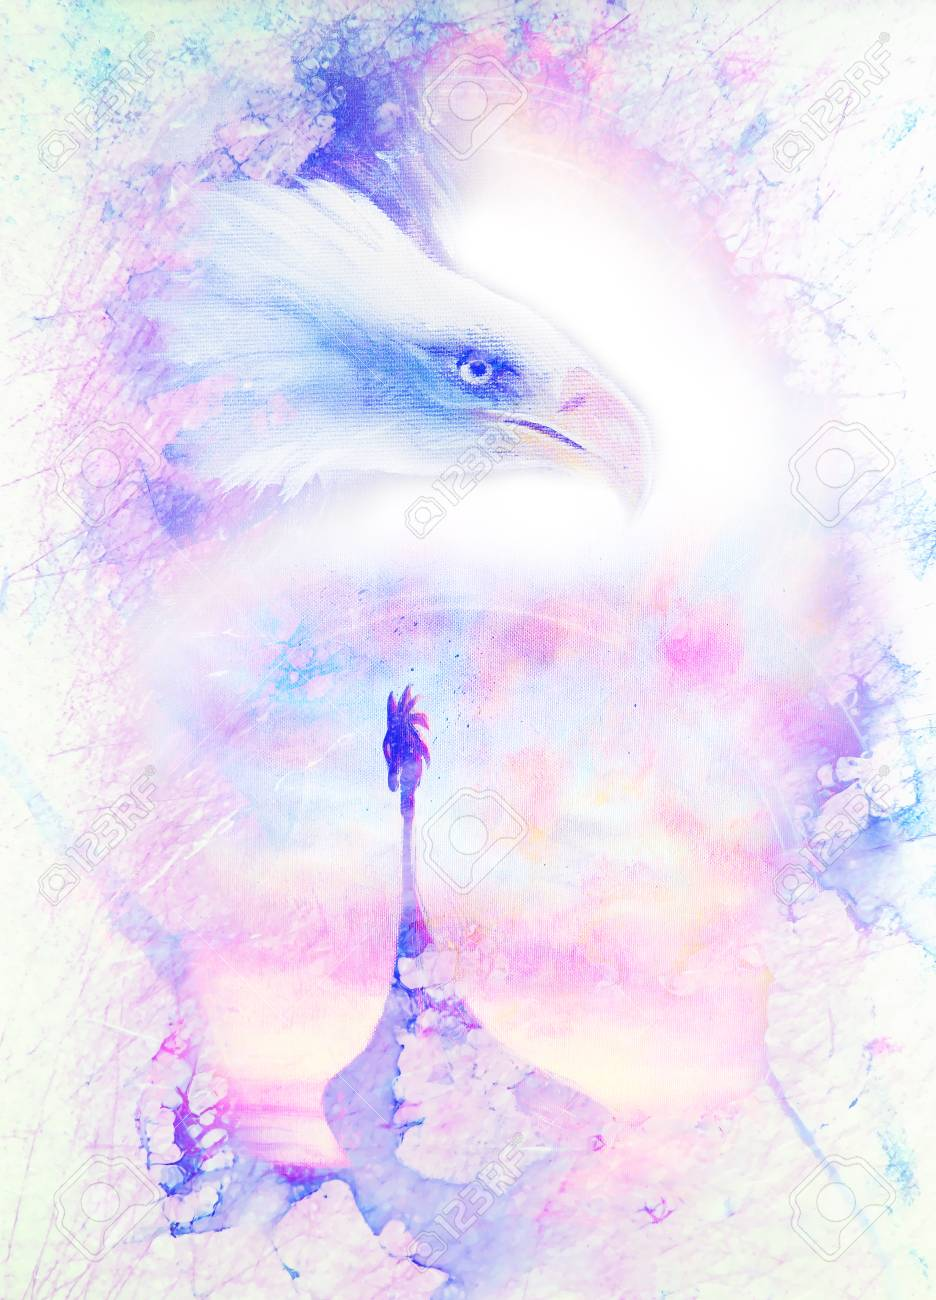 Painting Head Of American Eagle And Viking Boat On An Abstract